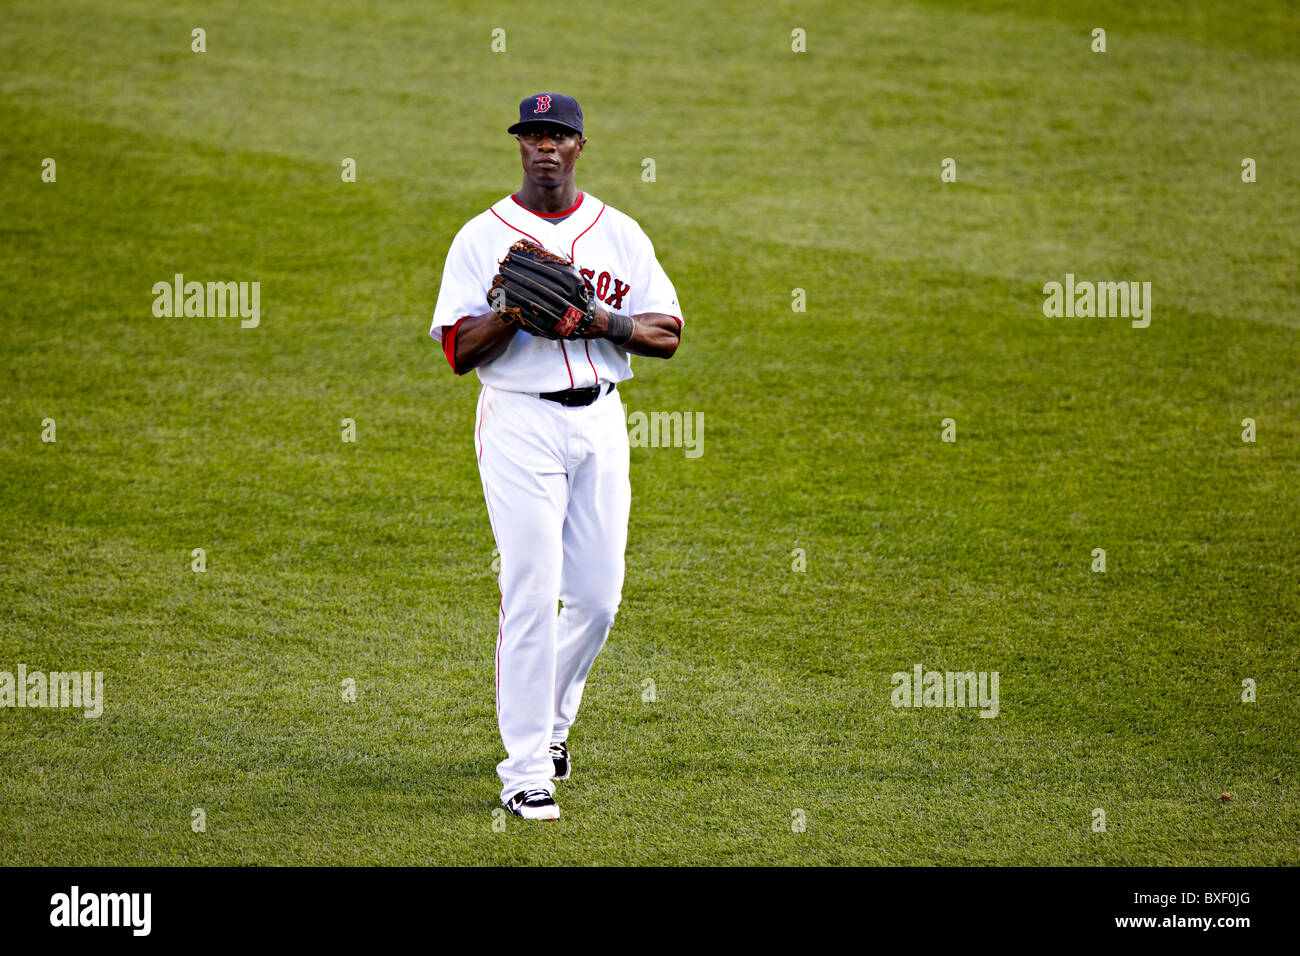 Mike Cameron during the July 15, 2010 Red Sox game in Fenway Park, Boston - Stock Image